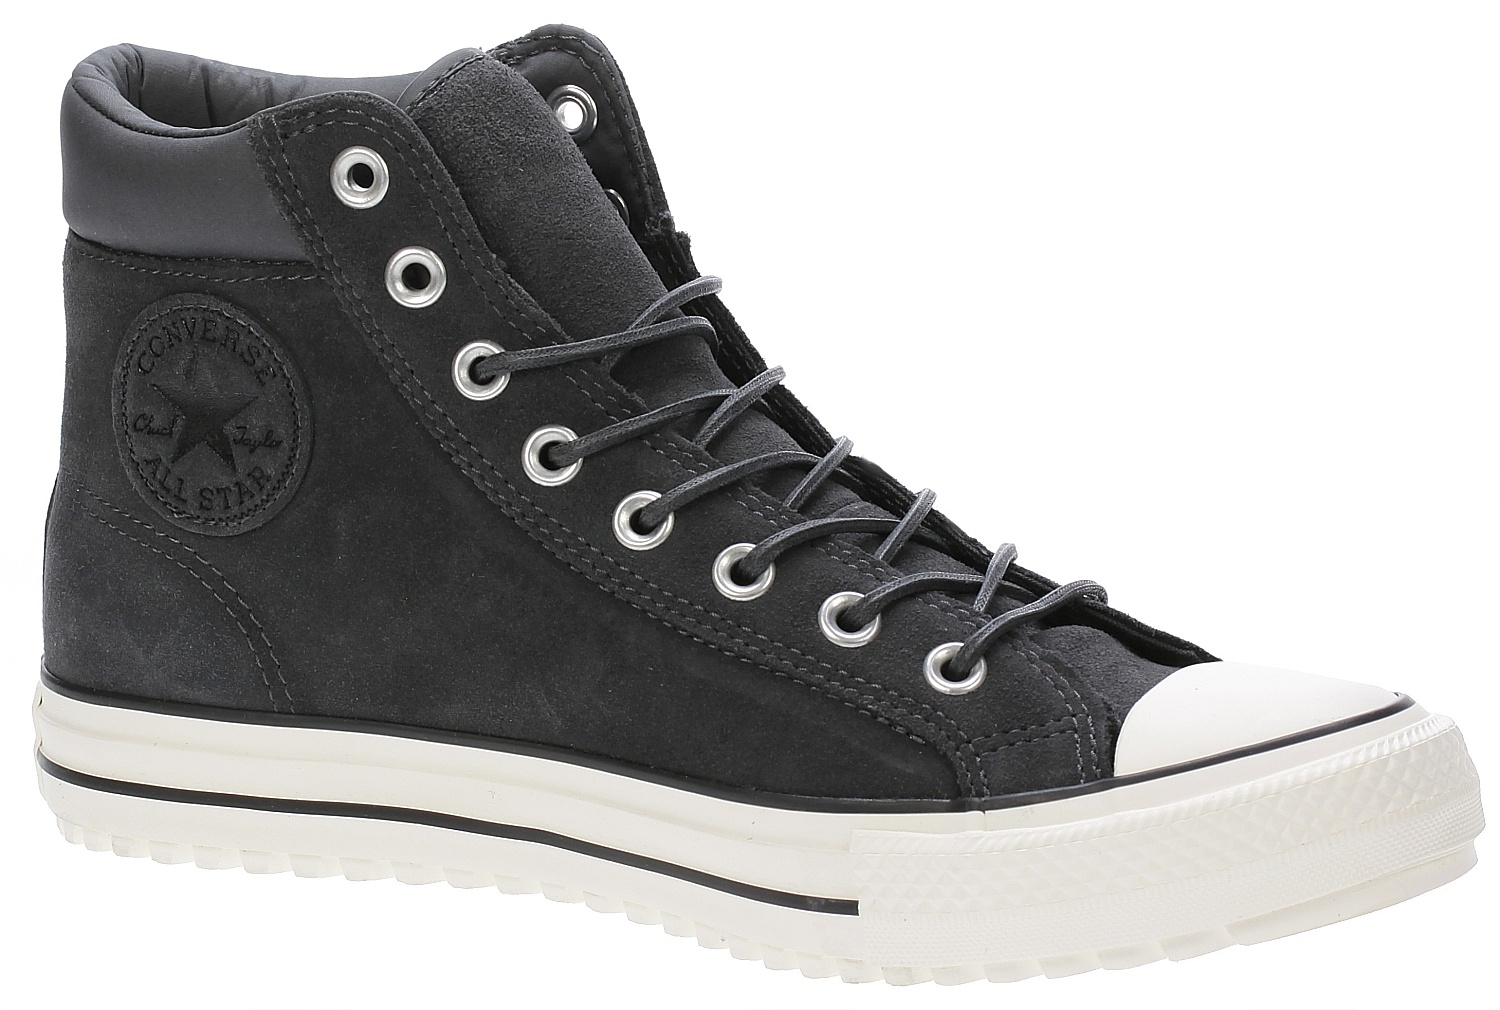 52daf54acbf031 boty Converse Chuck Taylor All Star Converse Boot PC Hi - 153675 Almost  Black Egret Black - Snowboard shop